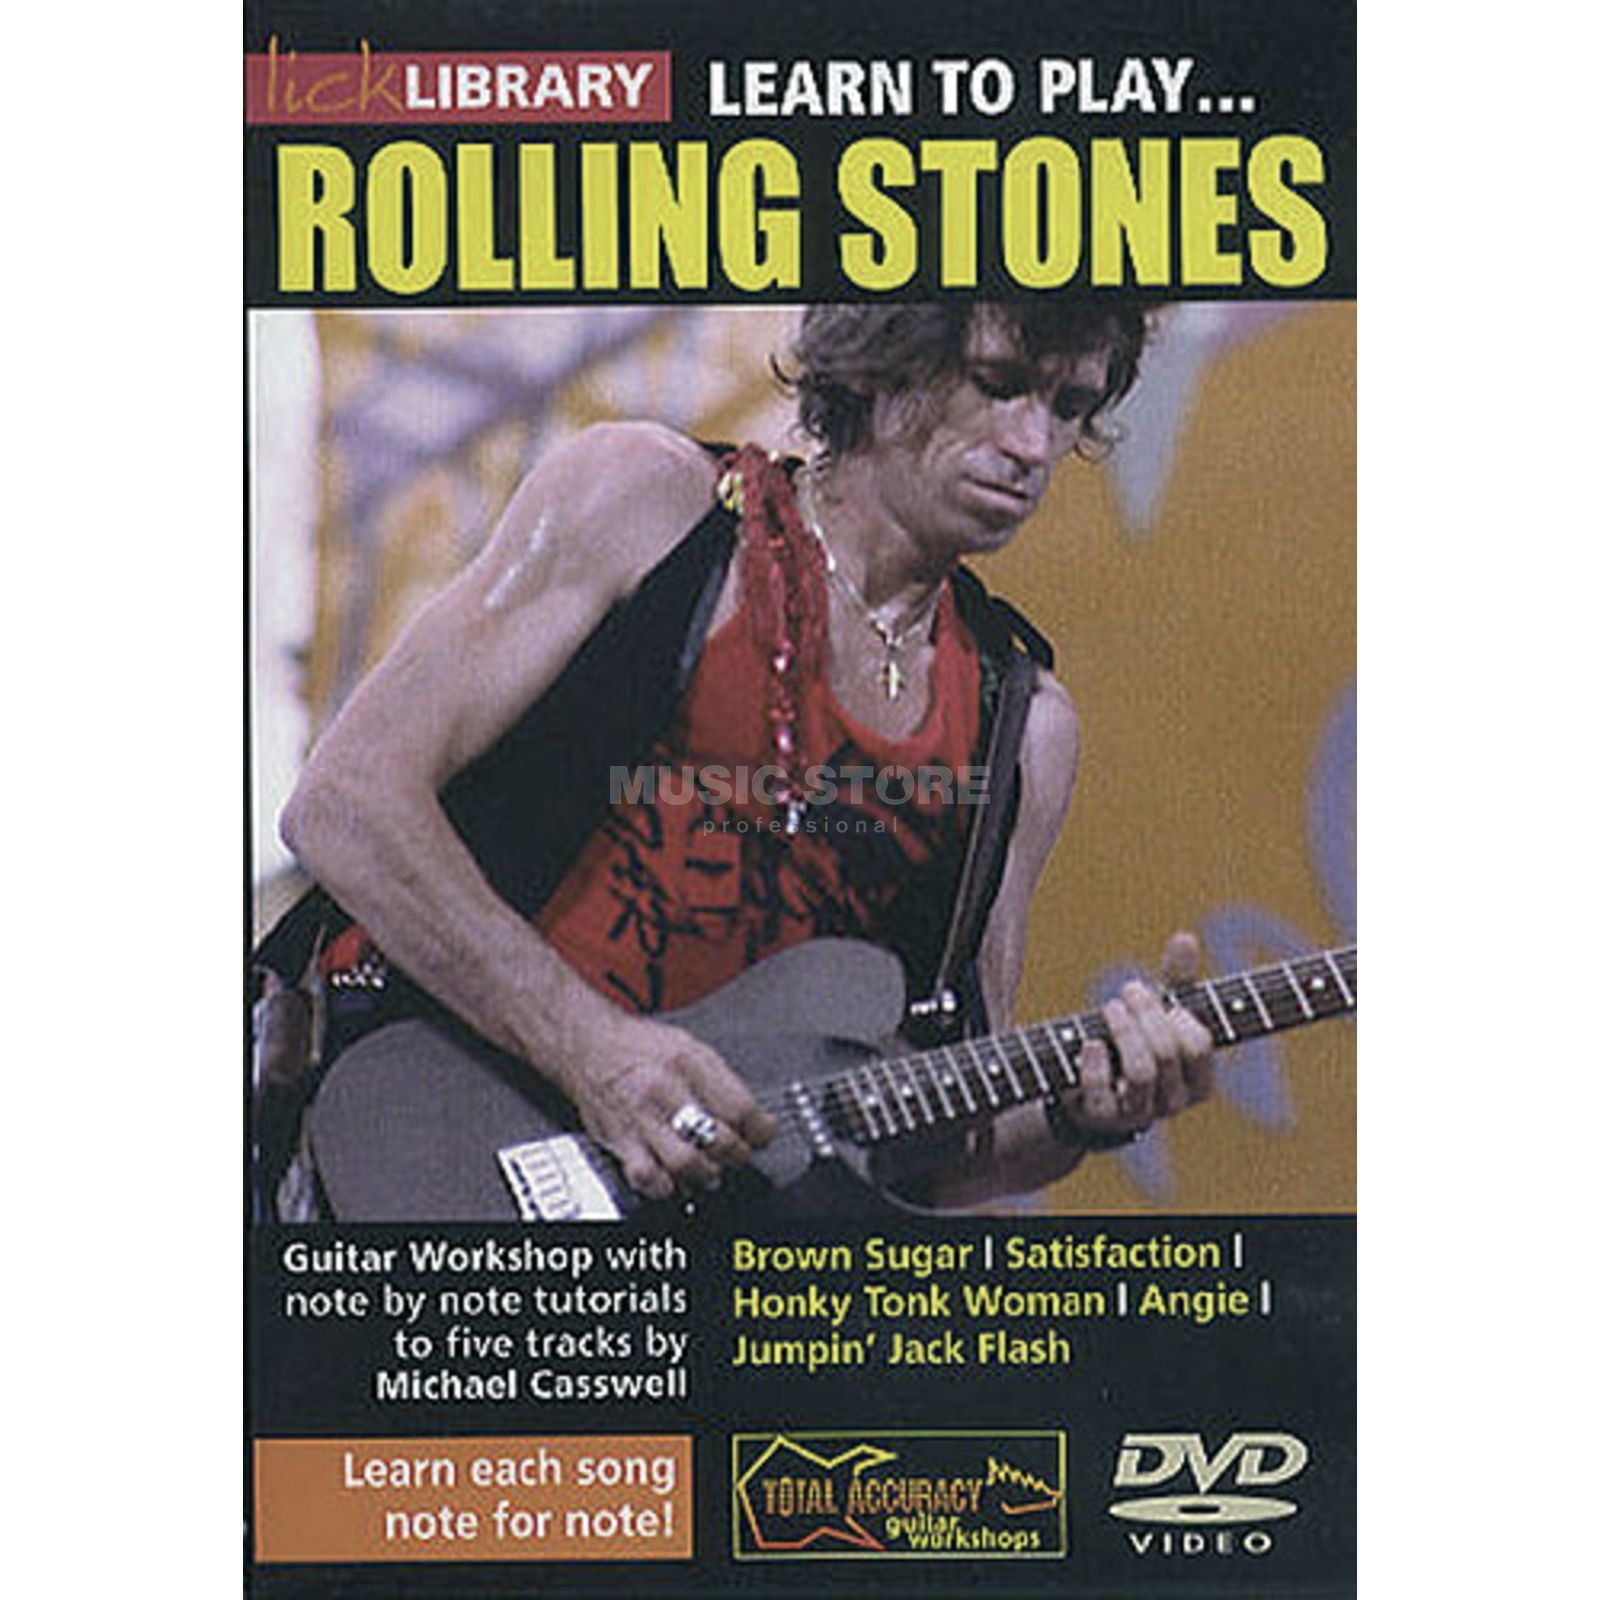 Roadrock International Lick Library: Learn To Play Rolling Stones DVD Produktbild